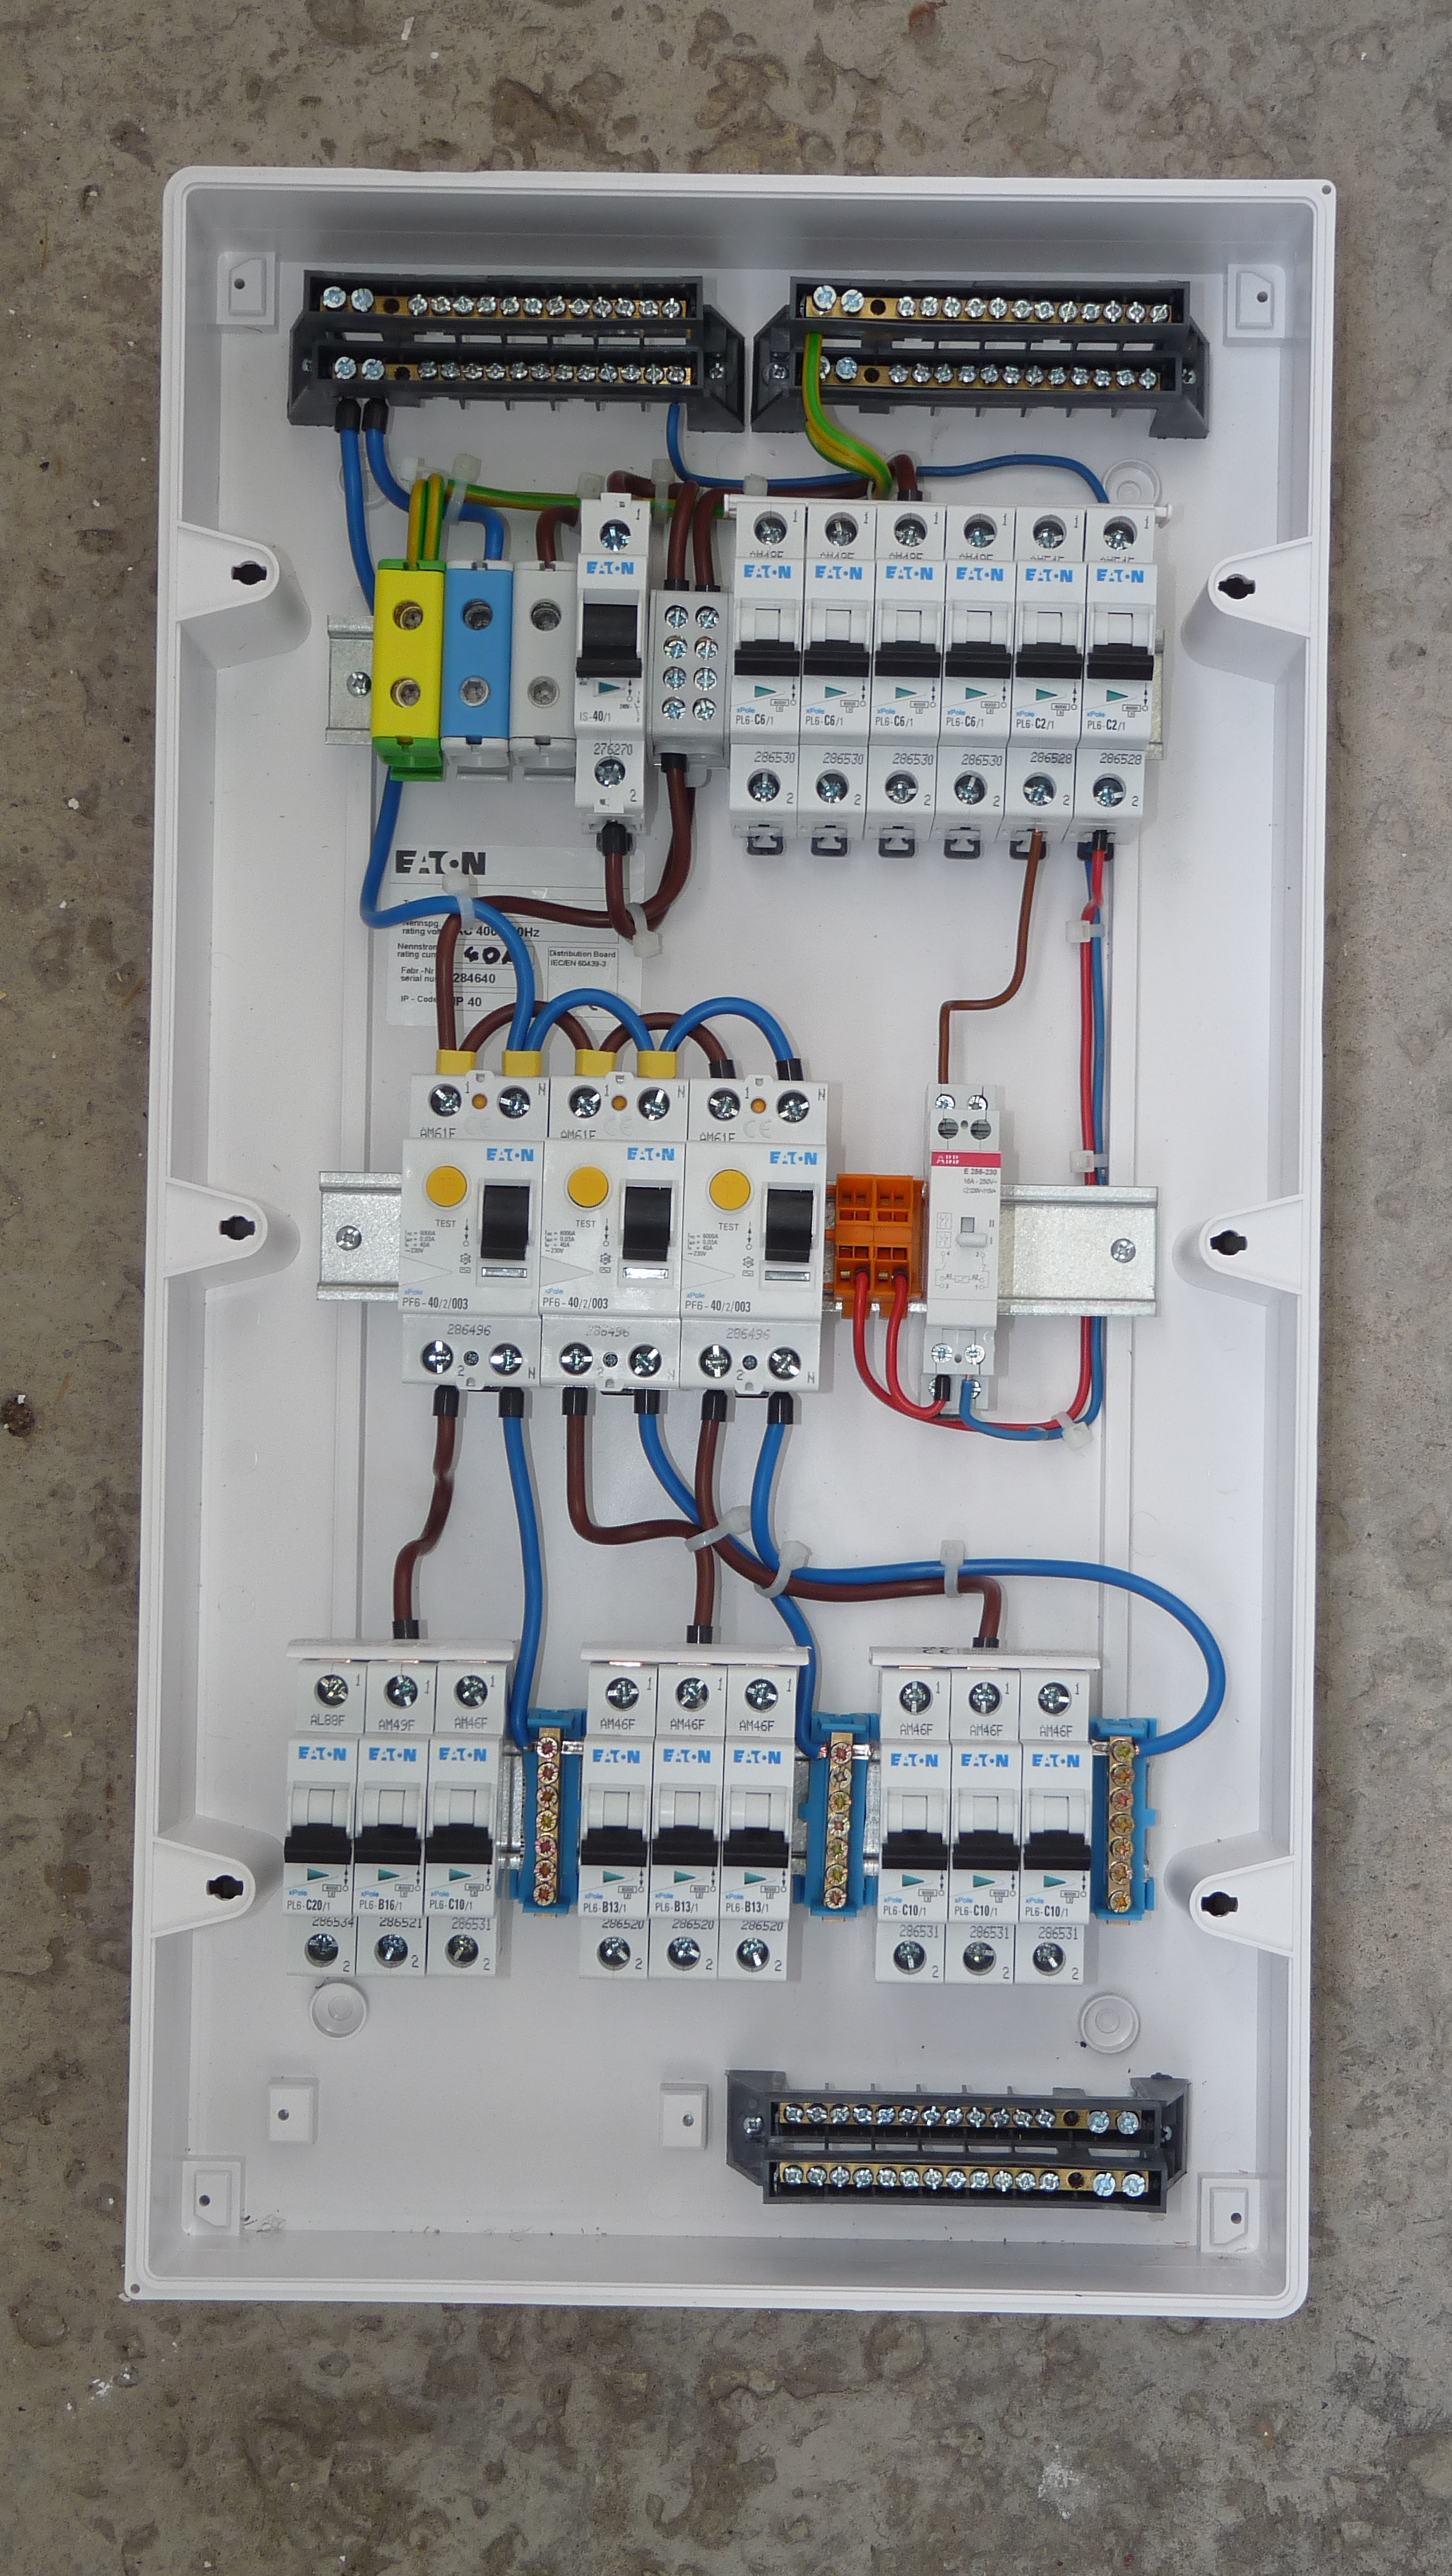 rv cable tv wiring diagram user interaction flow complete a hnc in electrical and electronic engineering at bridgend college now!